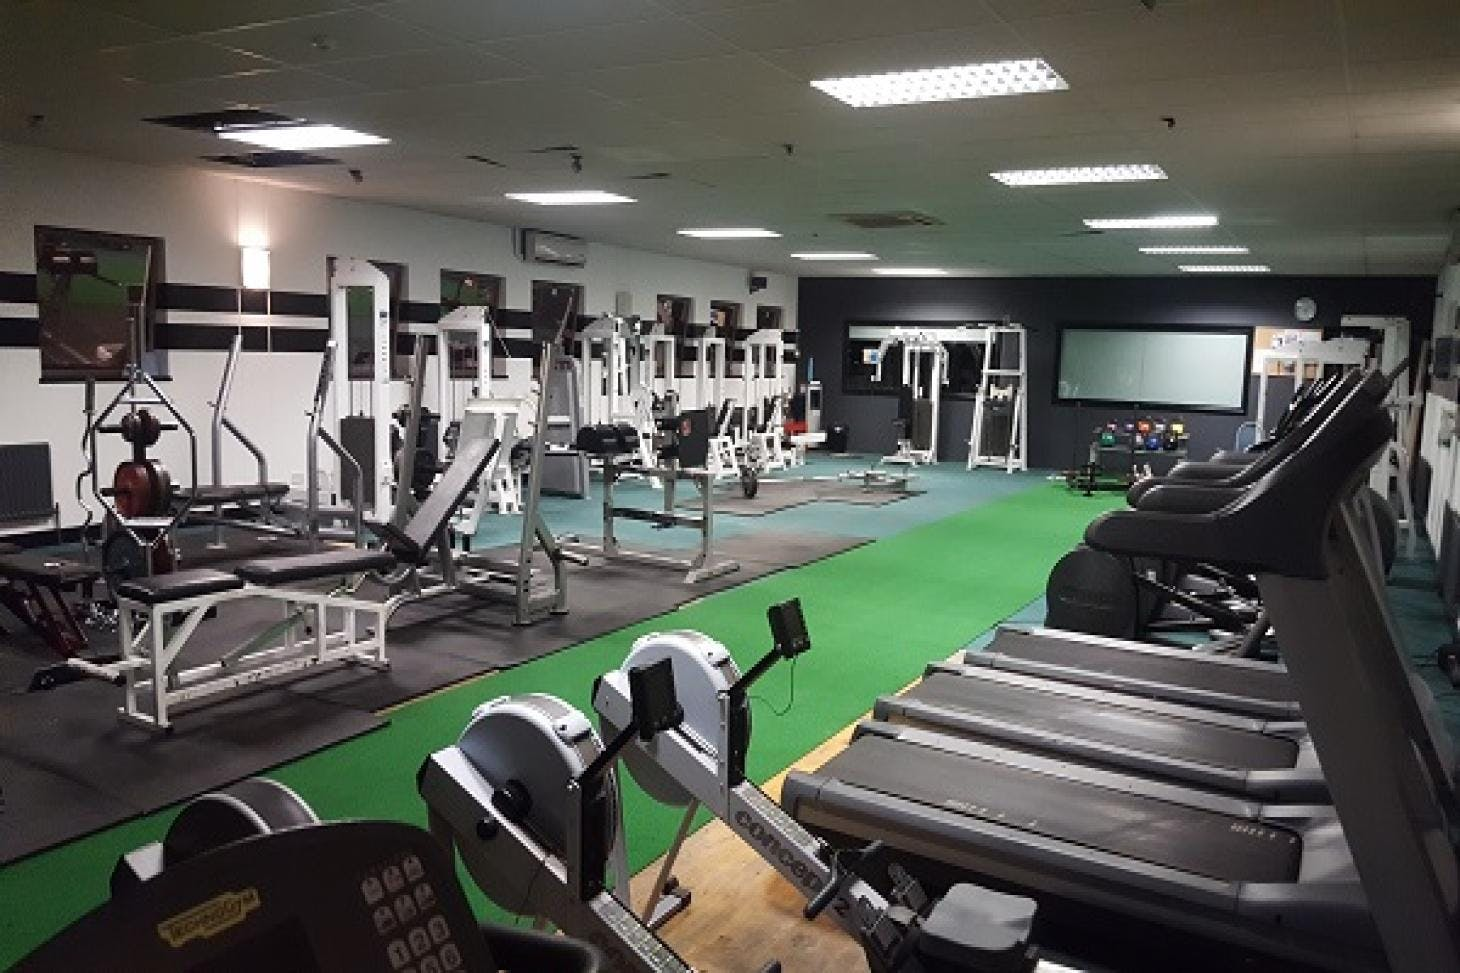 East Dulwich Strength and Fitness Gym gym